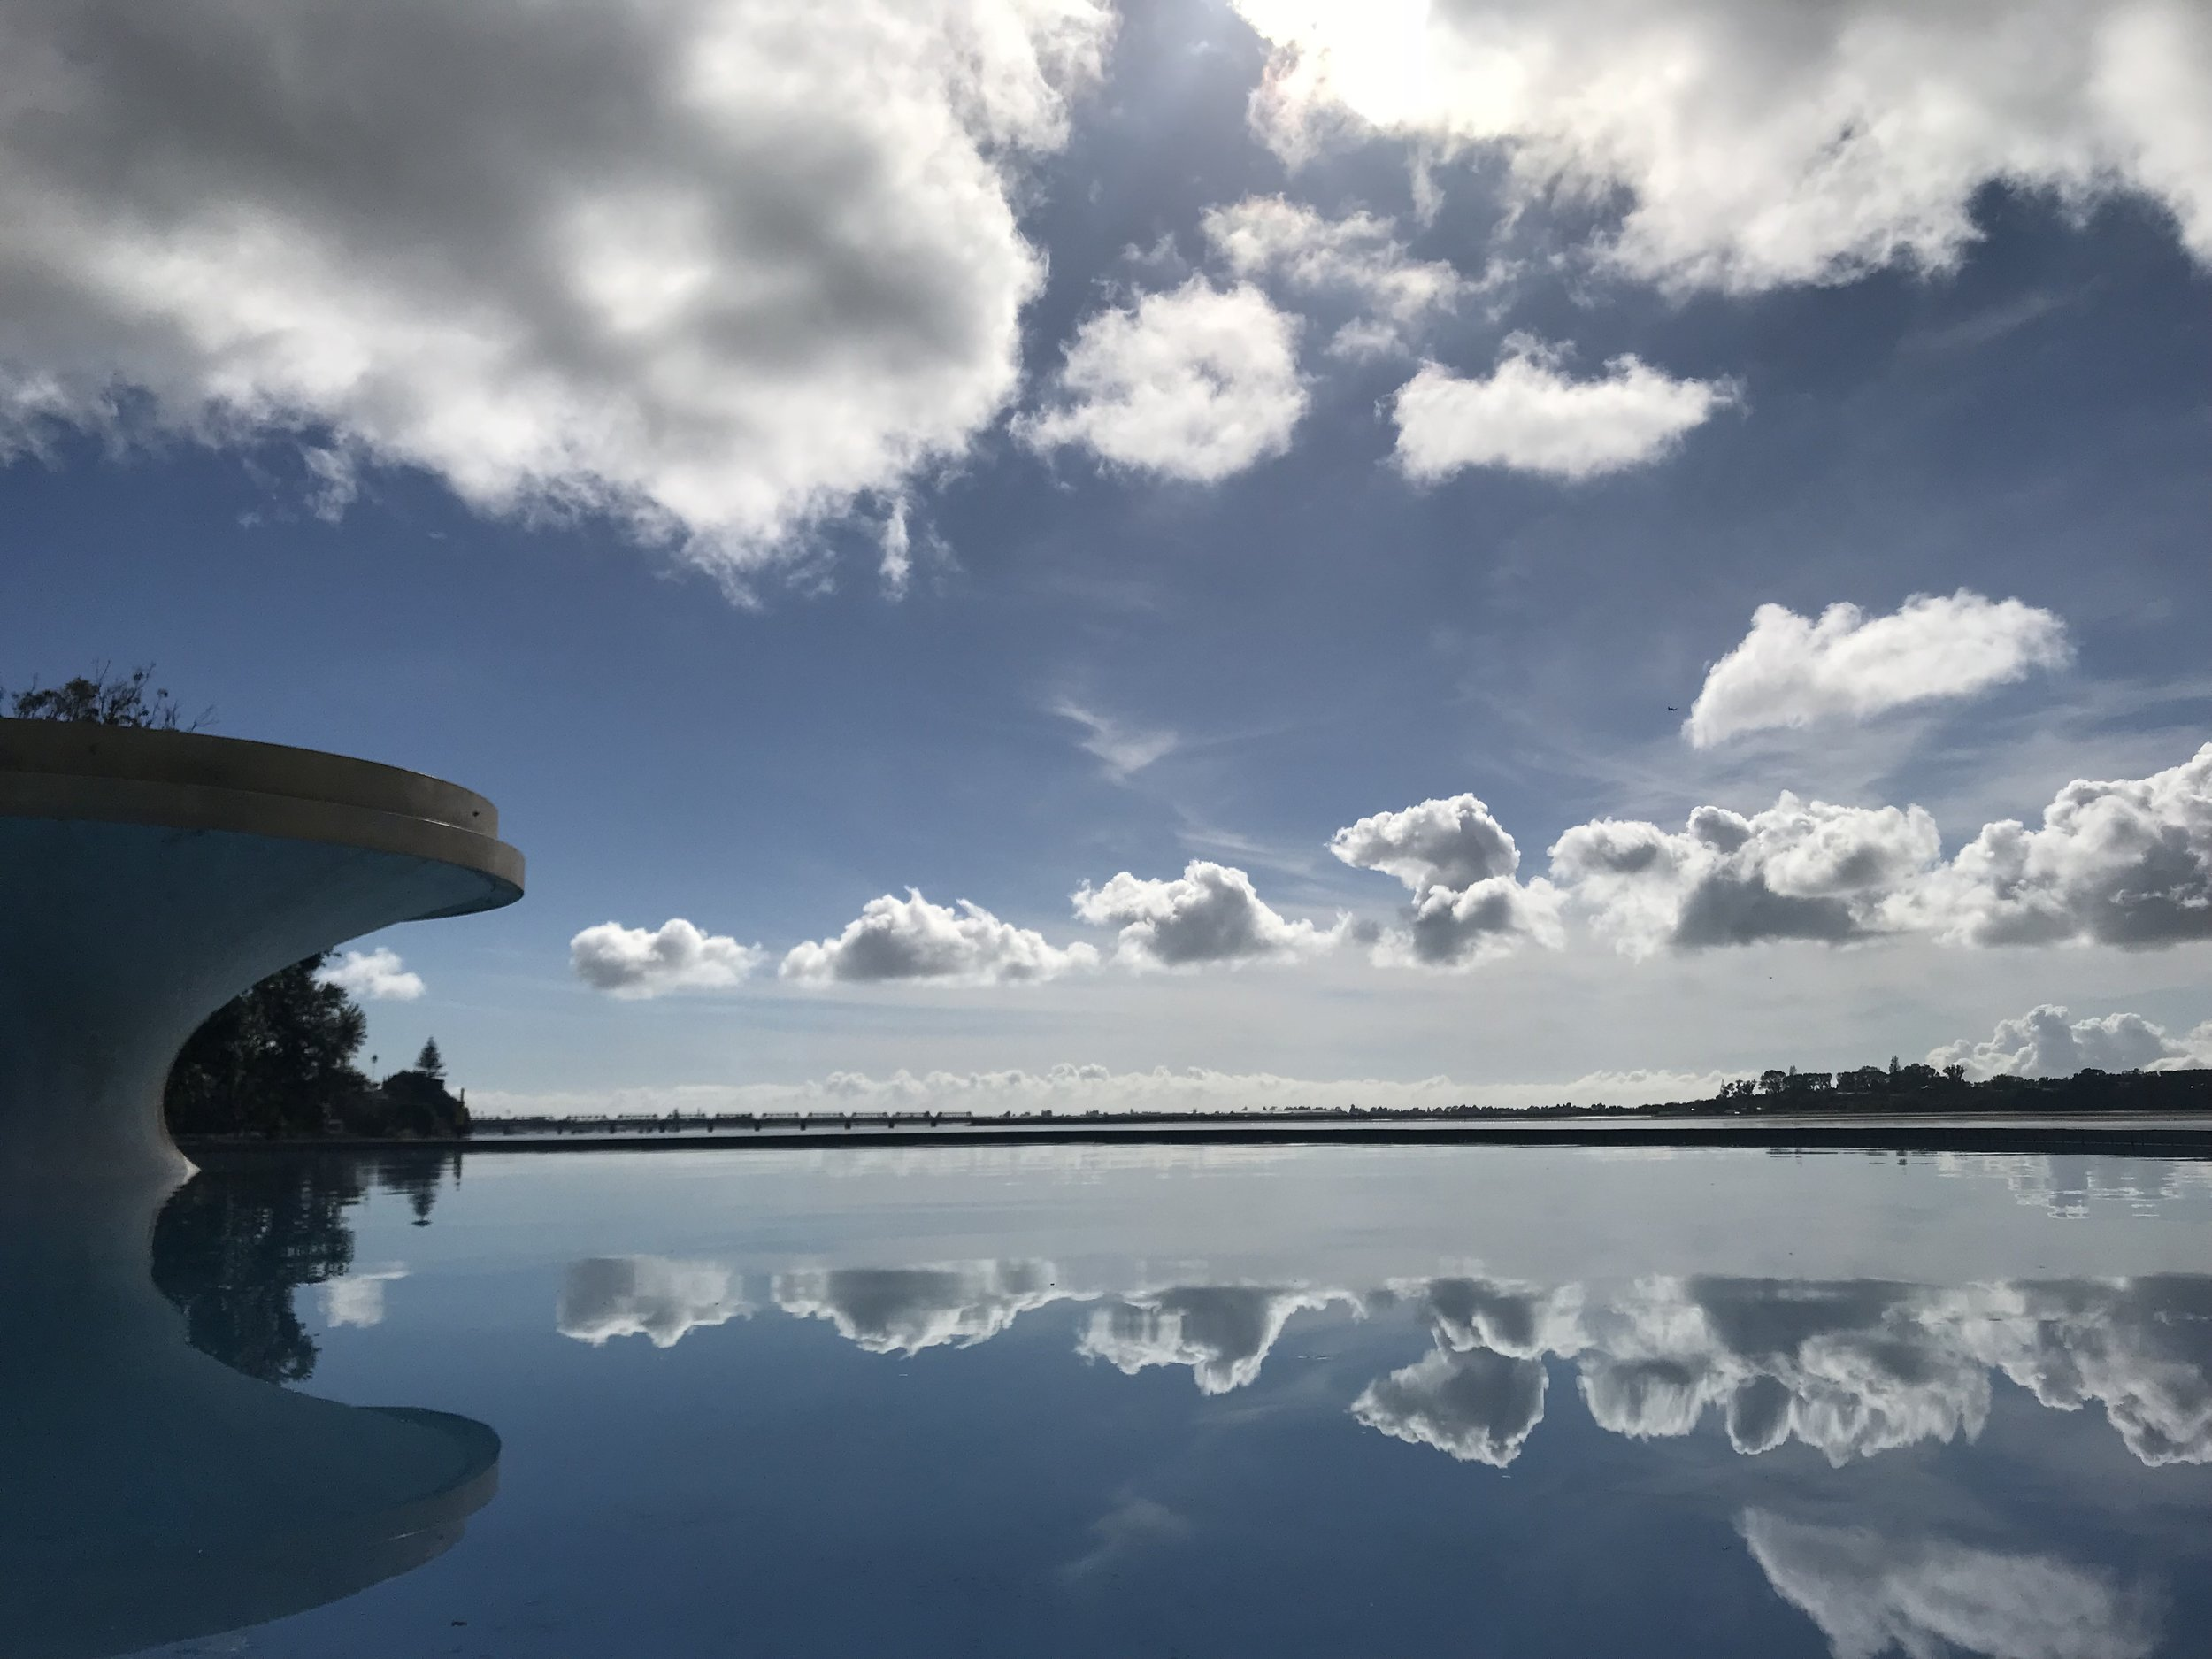 Spectacular New Zealand - reflections in Memorial Park